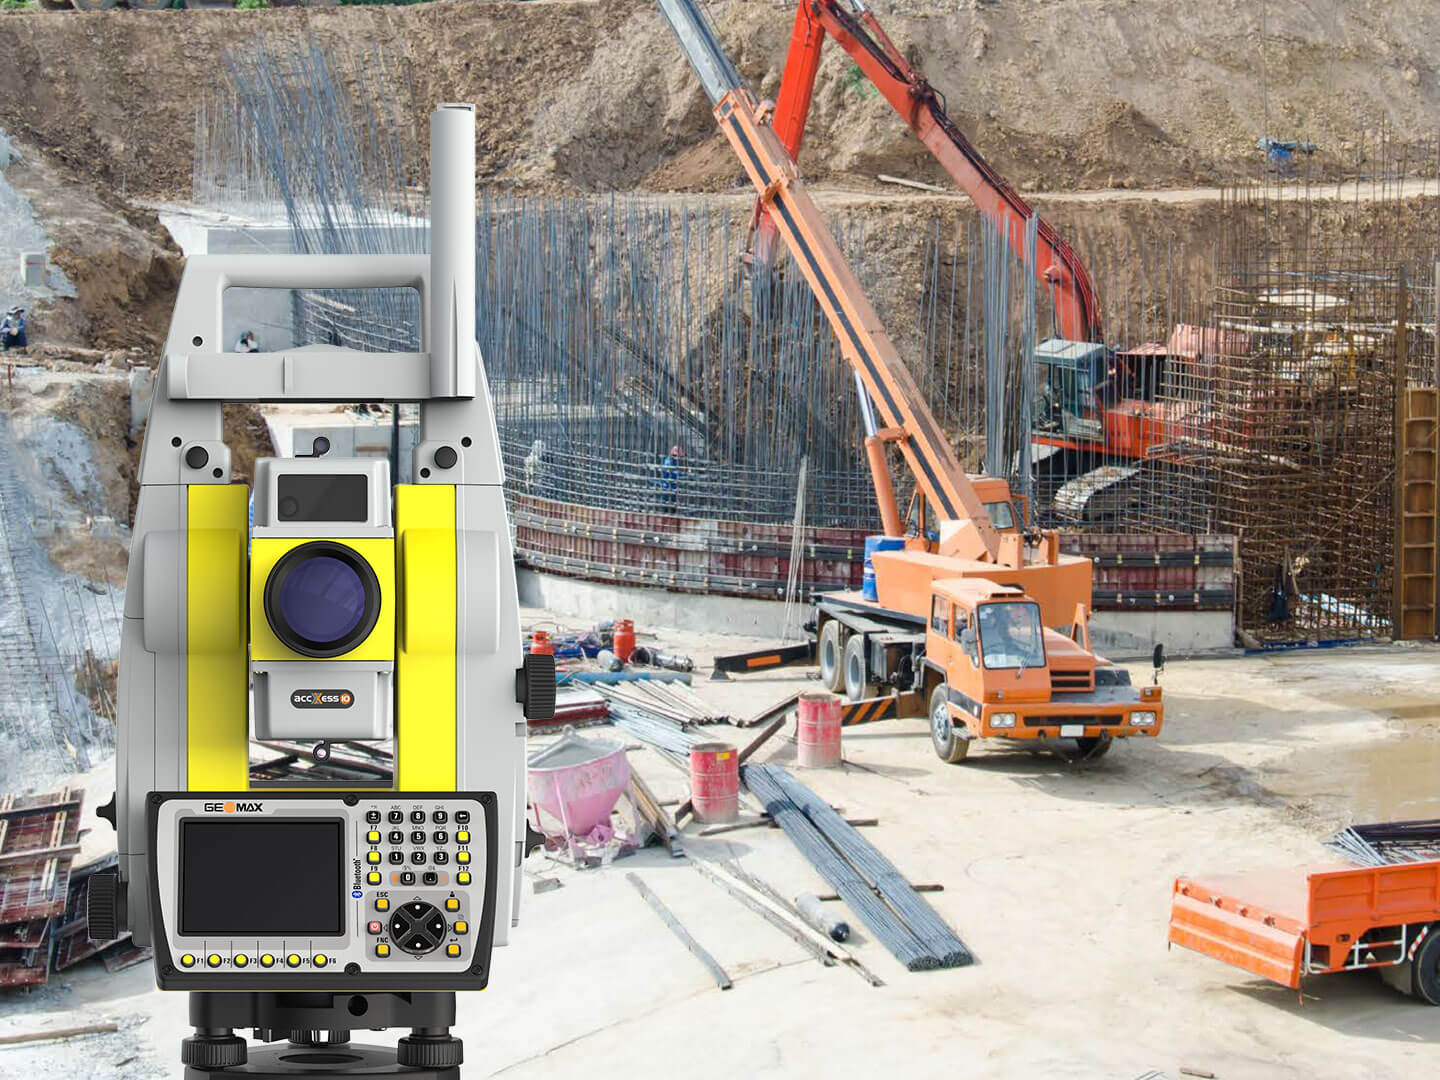 GeoMax Zoom70 Serie in Aktion